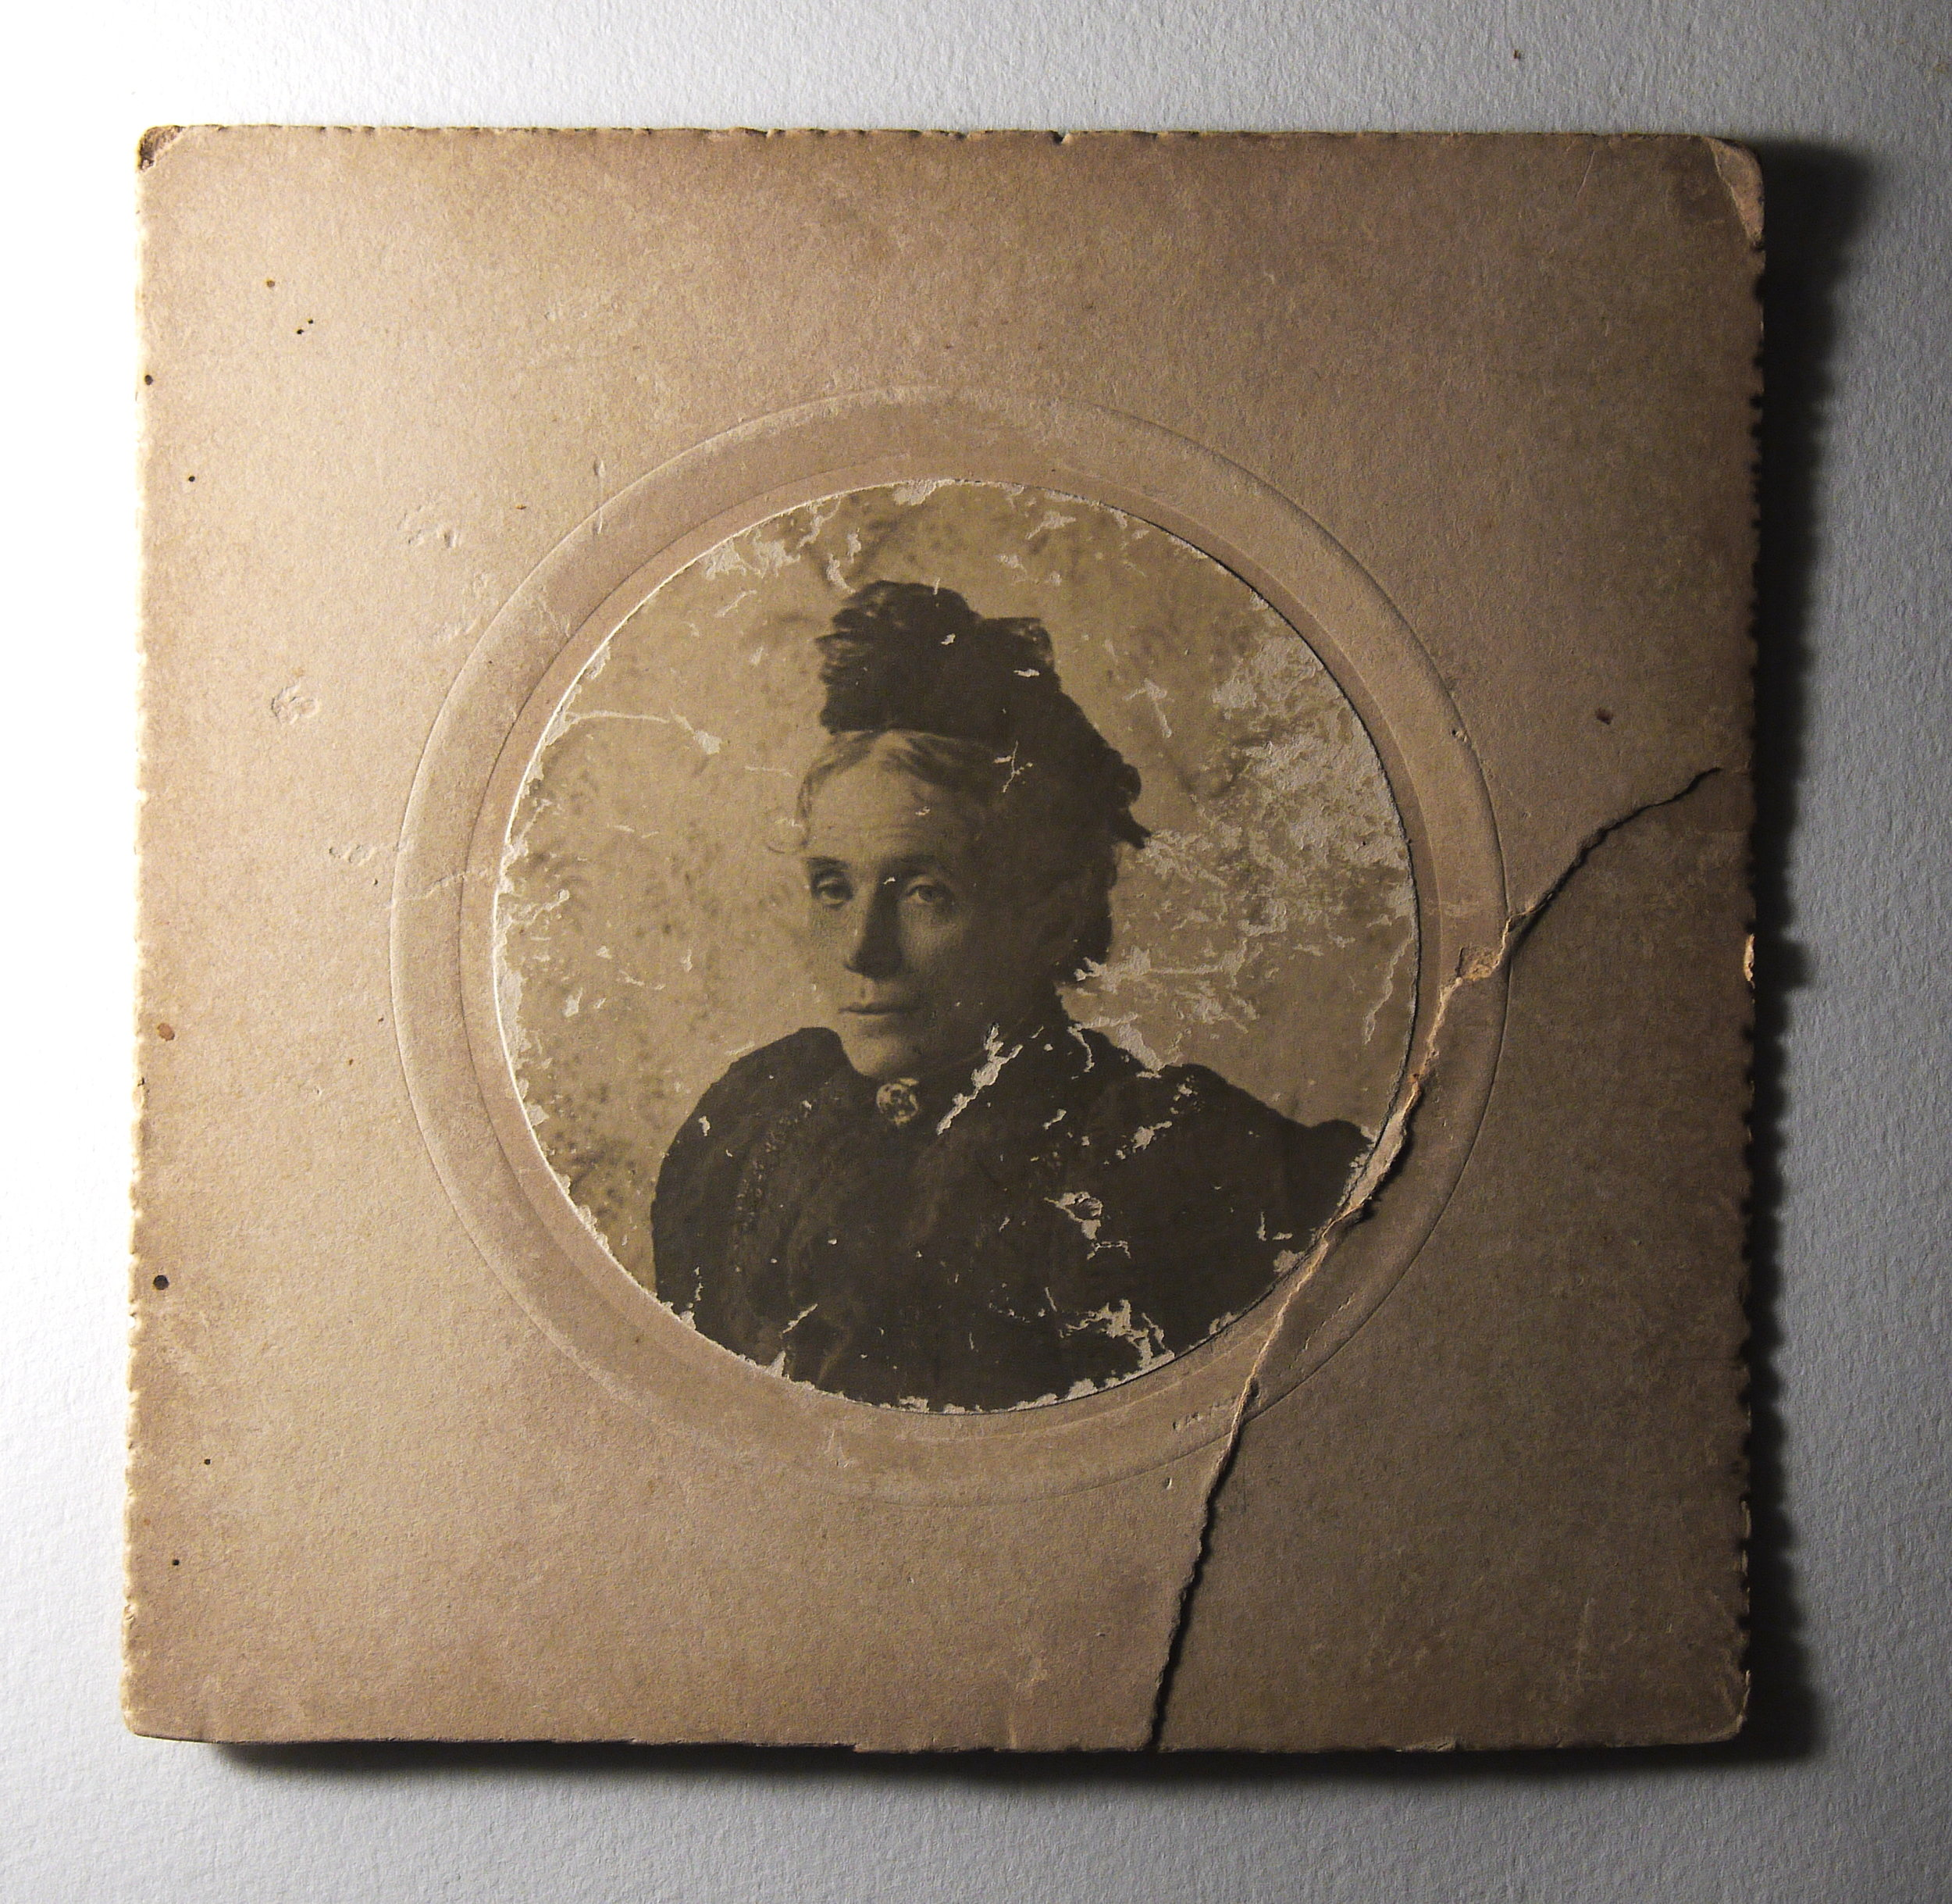 Antique family photograph, with damage to the board and photographic emulsion.